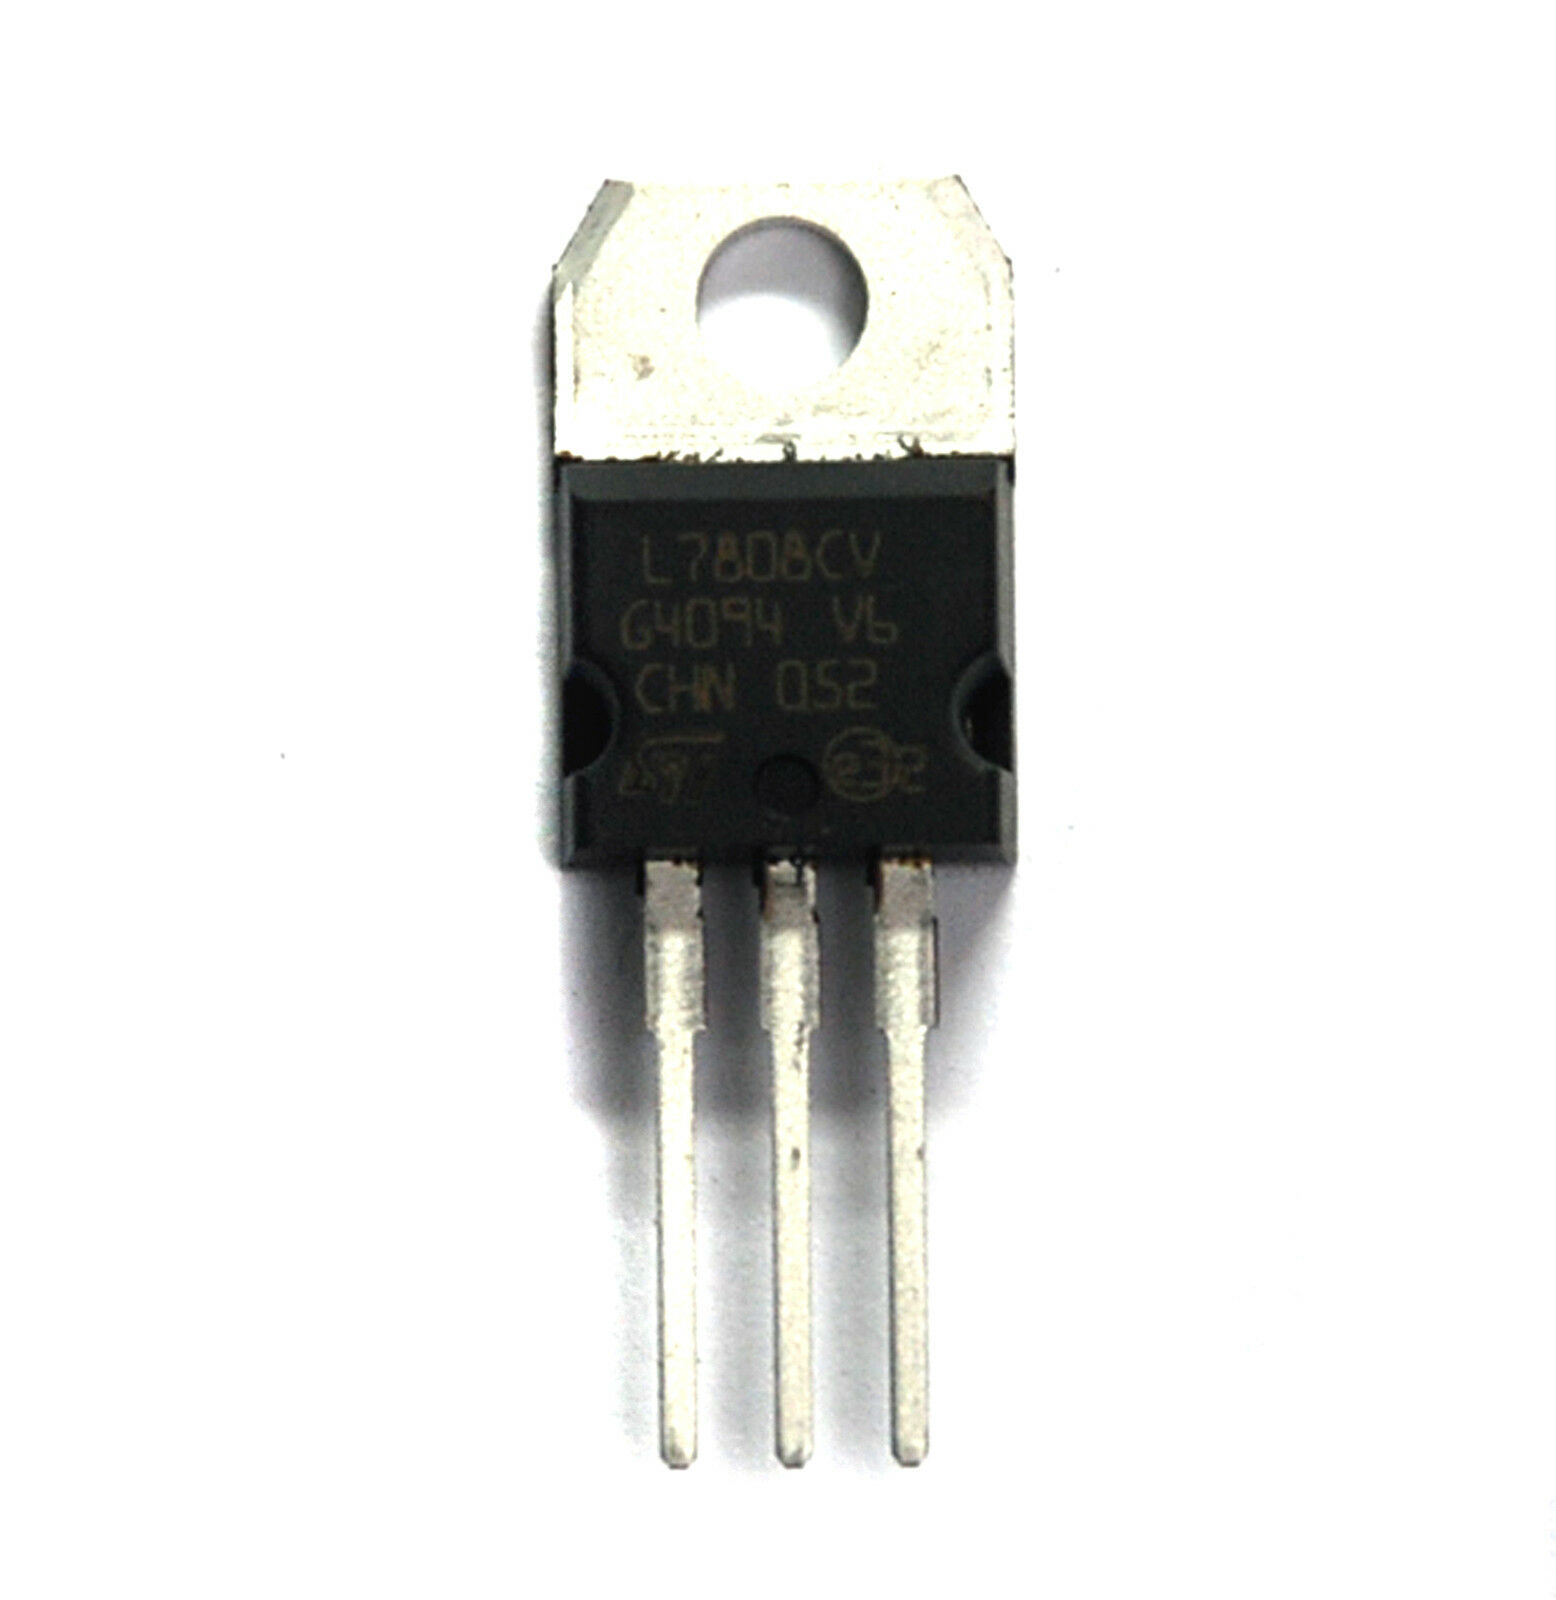 10pc Voltage Regulator Ic L7808cv 7808 8v 1a To 220 Rohs St 6 Volt Circuit Using 7806 1 Of See More